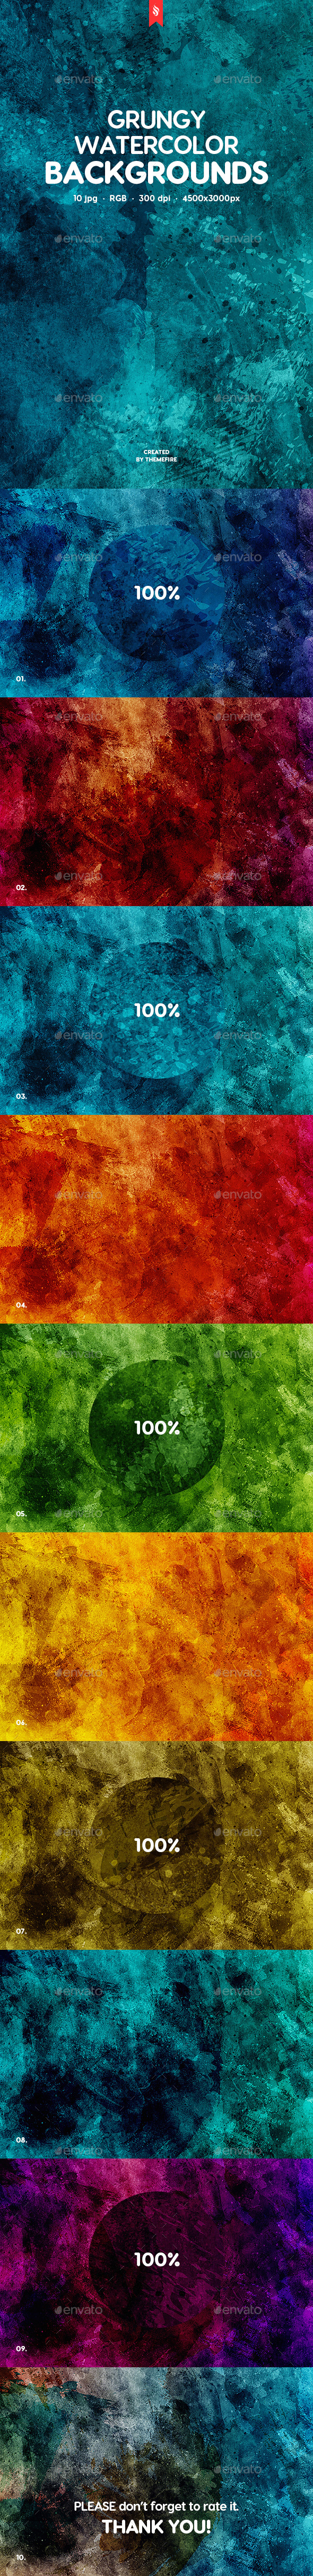 Grunge Watercolor Backgrounds by themefire | GraphicRiver